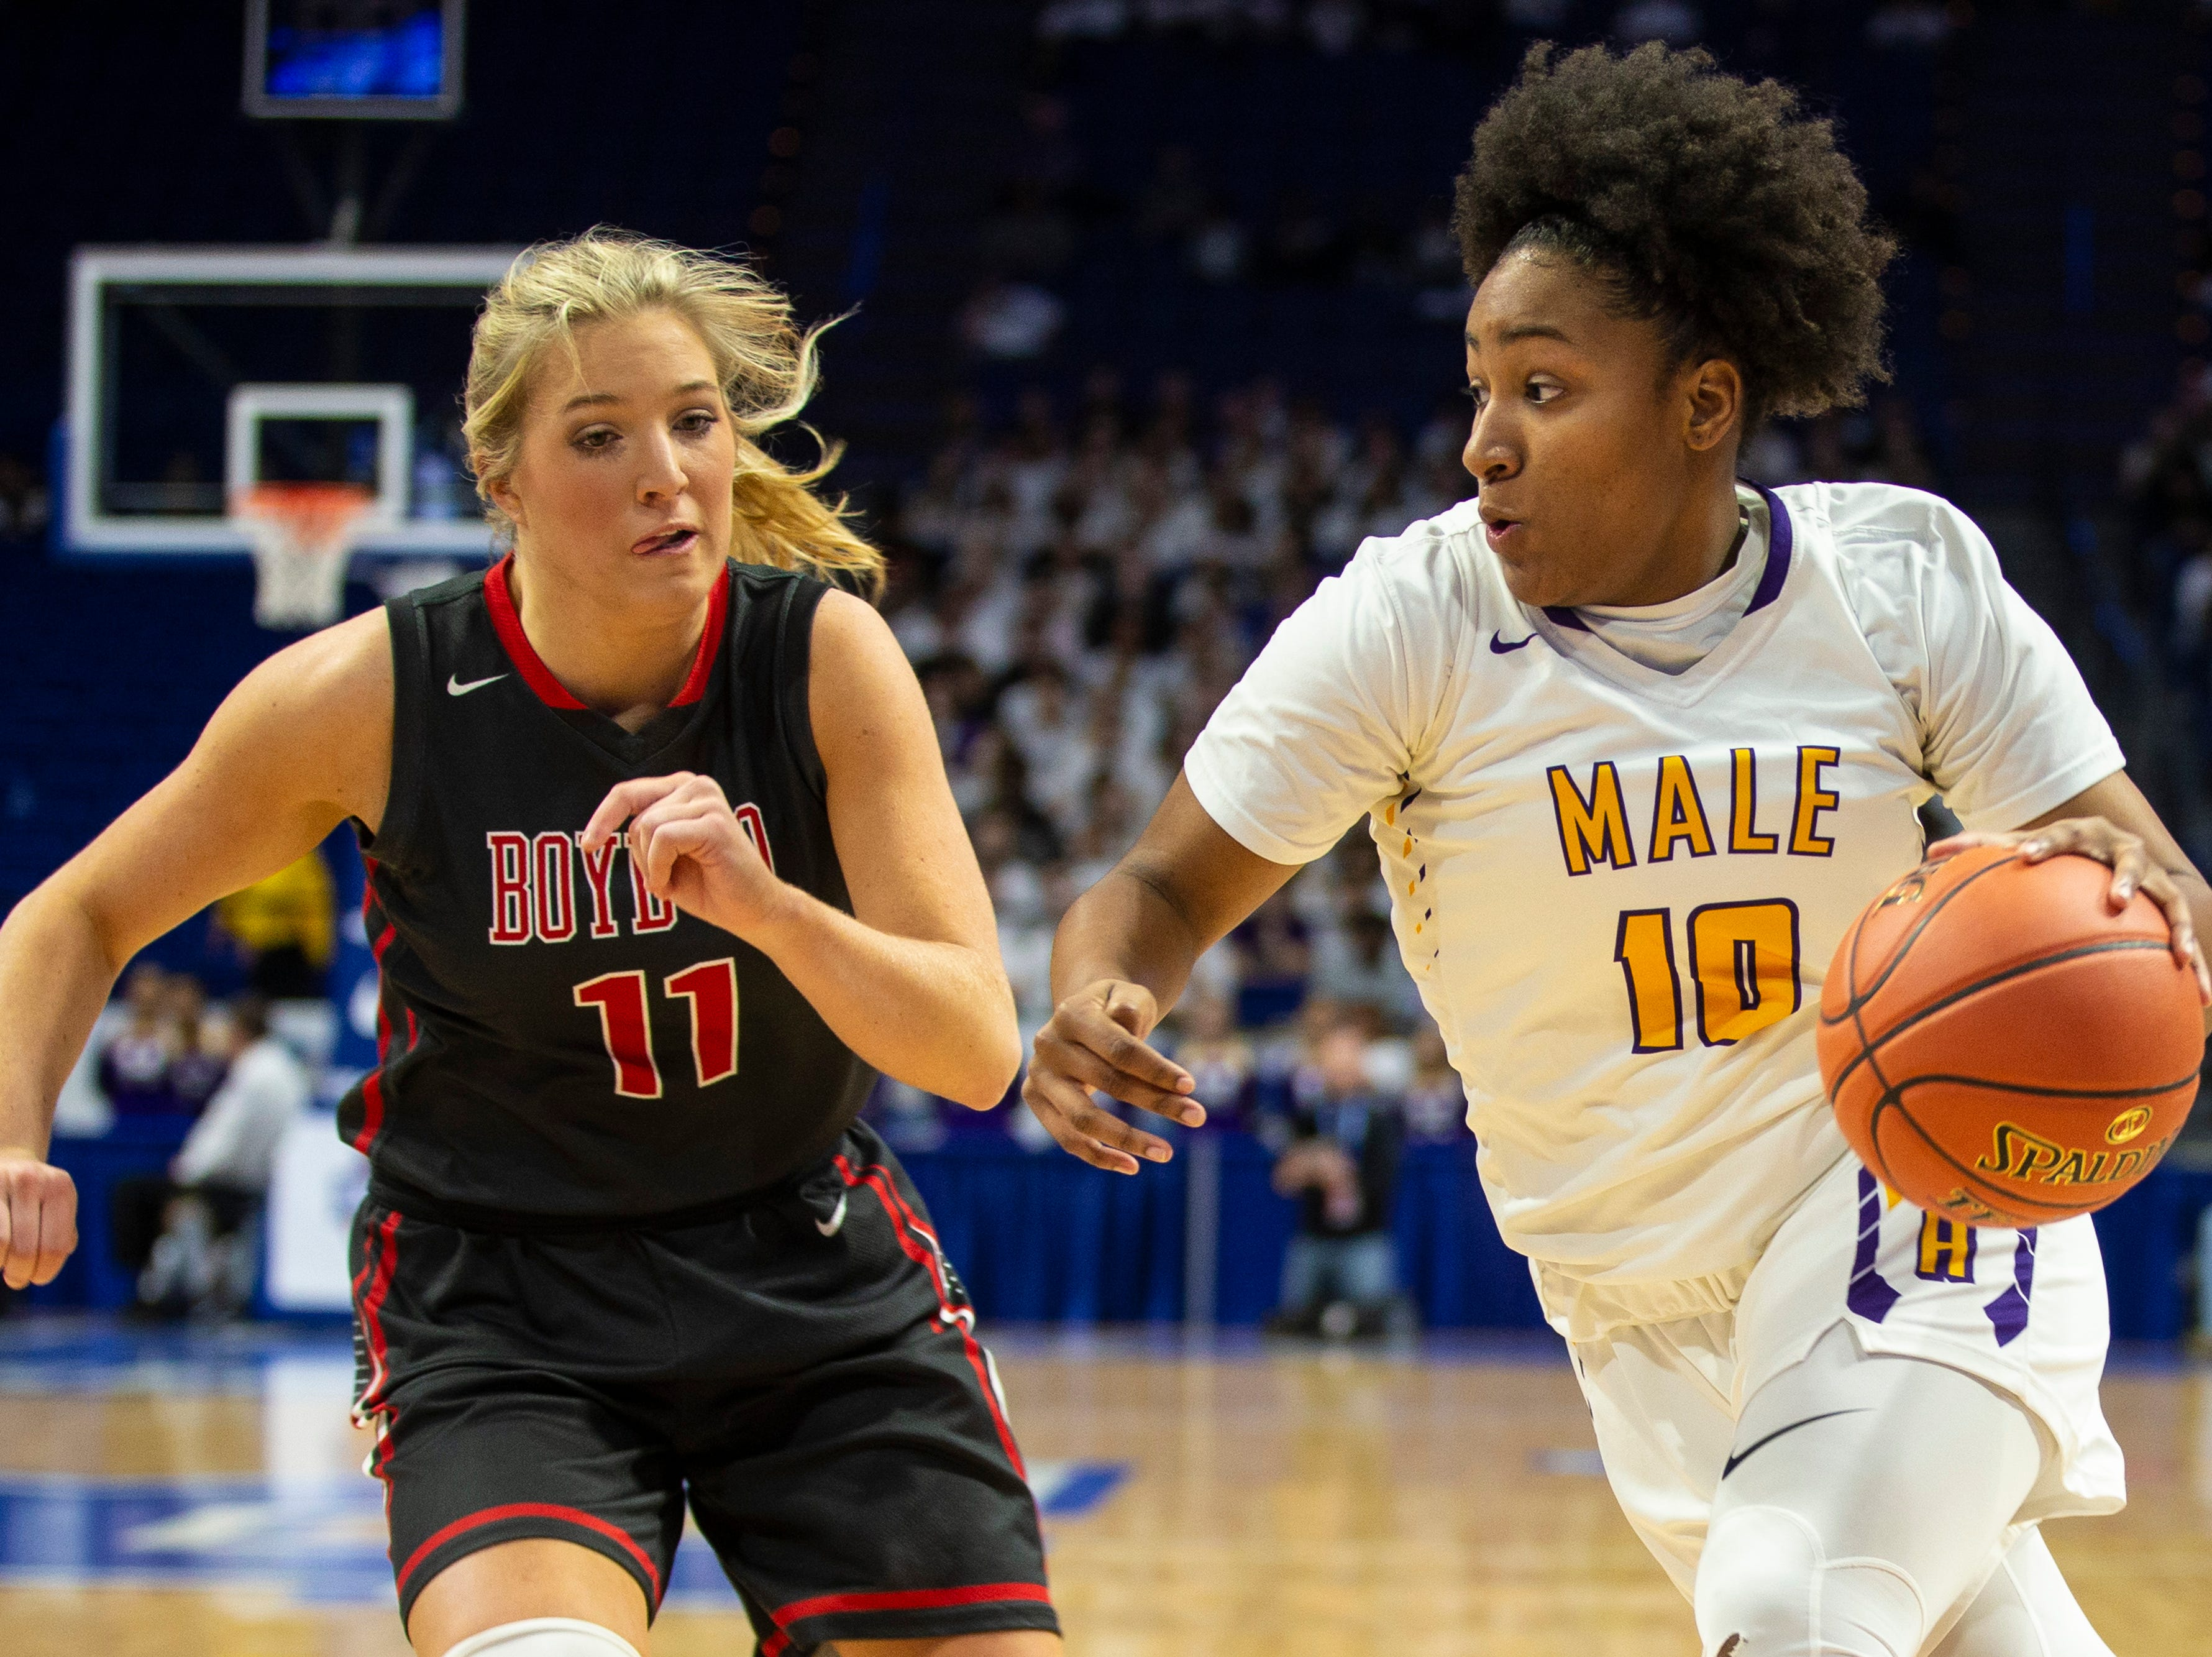 Boyd County's Graci Borders, left, looks to defend Male's Destiny Combs as Boyd County took on Louisville Male in the KHSAA state basketball tournament in Rupp Arena. Male eliminated Boyd County 74-56. March 14, 2019